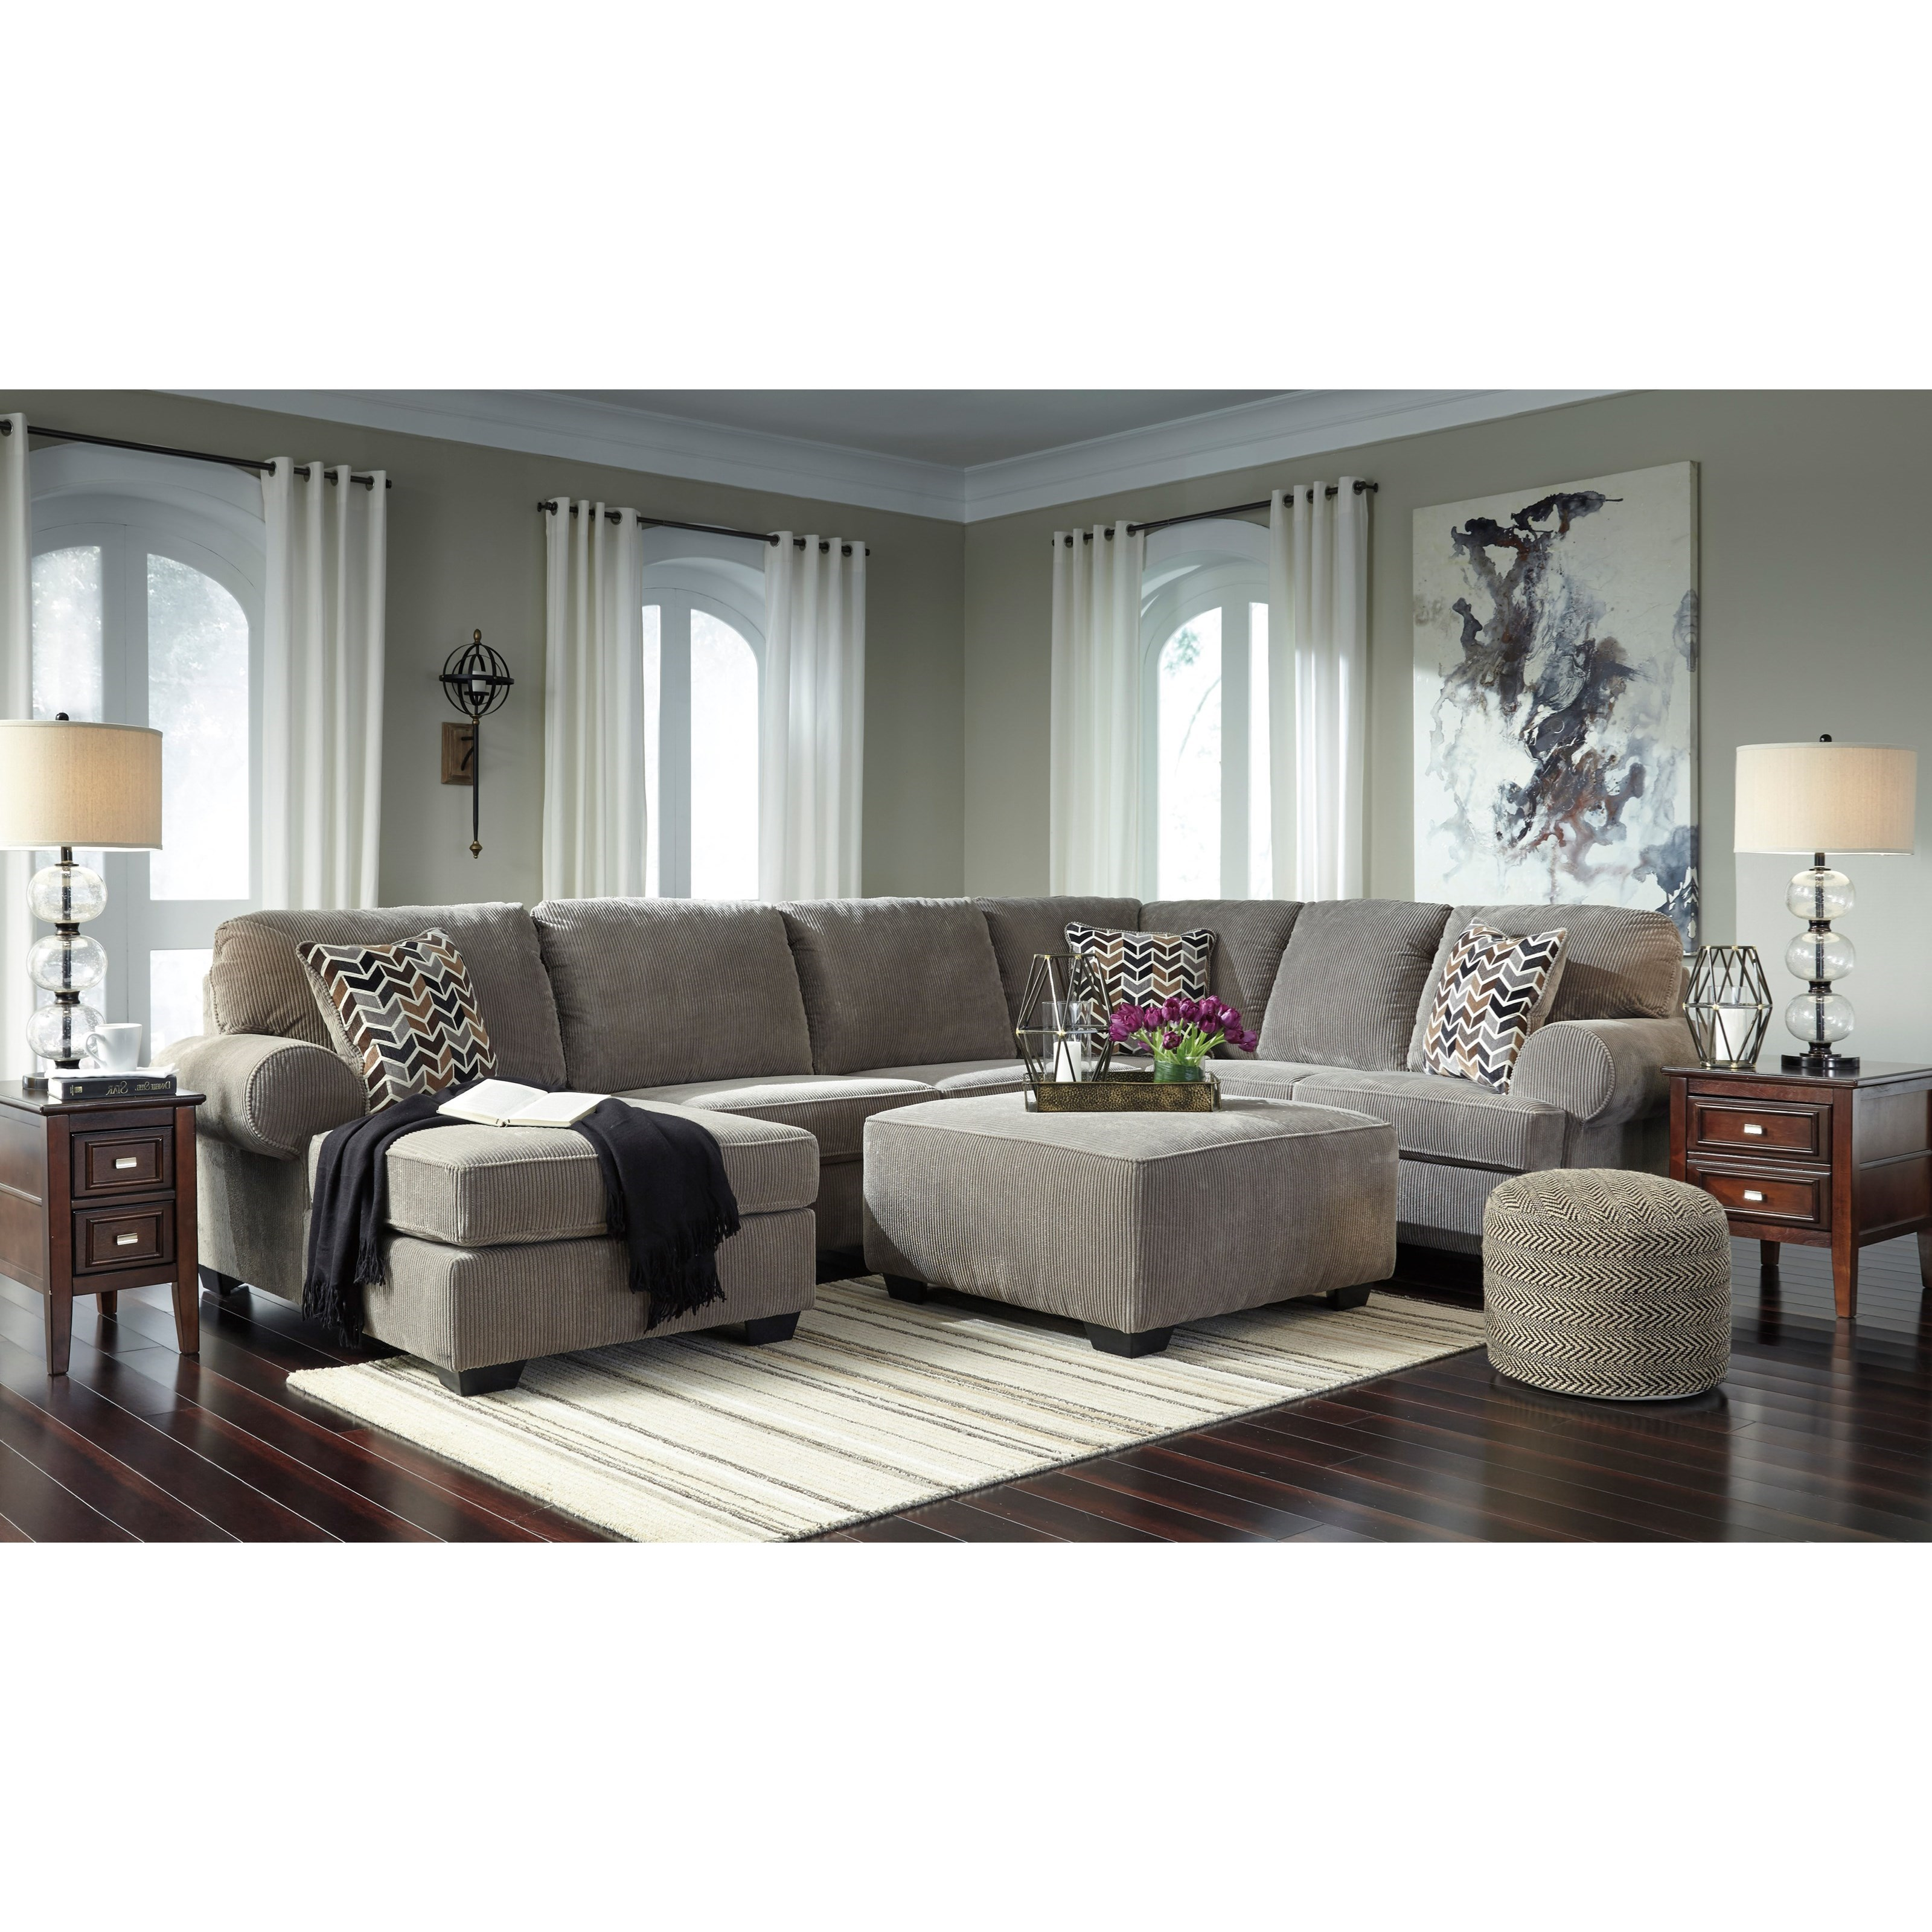 Signature design by ashley jinllingsly stationary living for Living room furniture groups